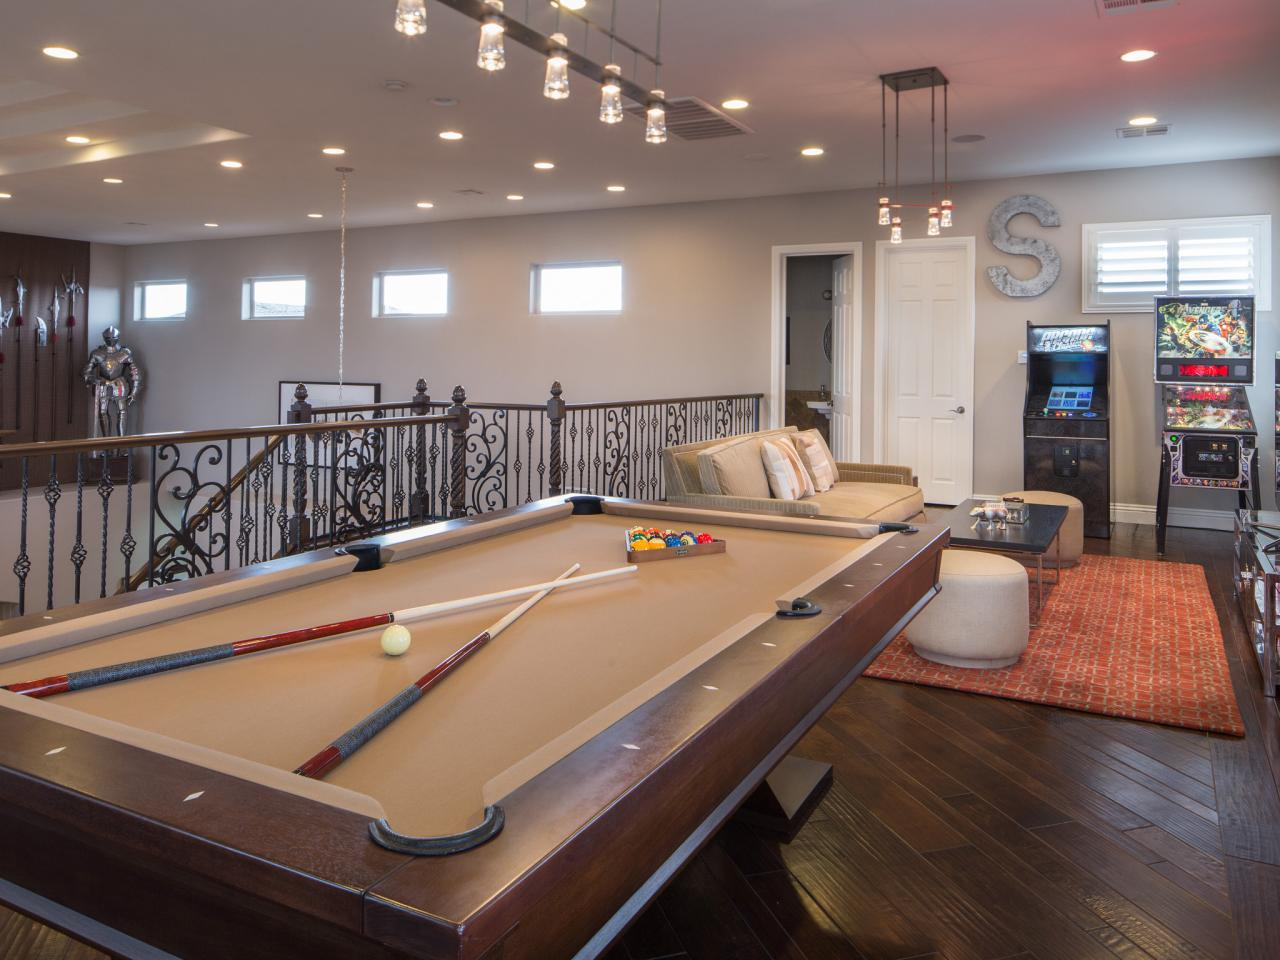 If you have a game room or recreation area in your home, it's important to have good lighting. A Game Room for Adult That Will Make Your Leisure Time ...